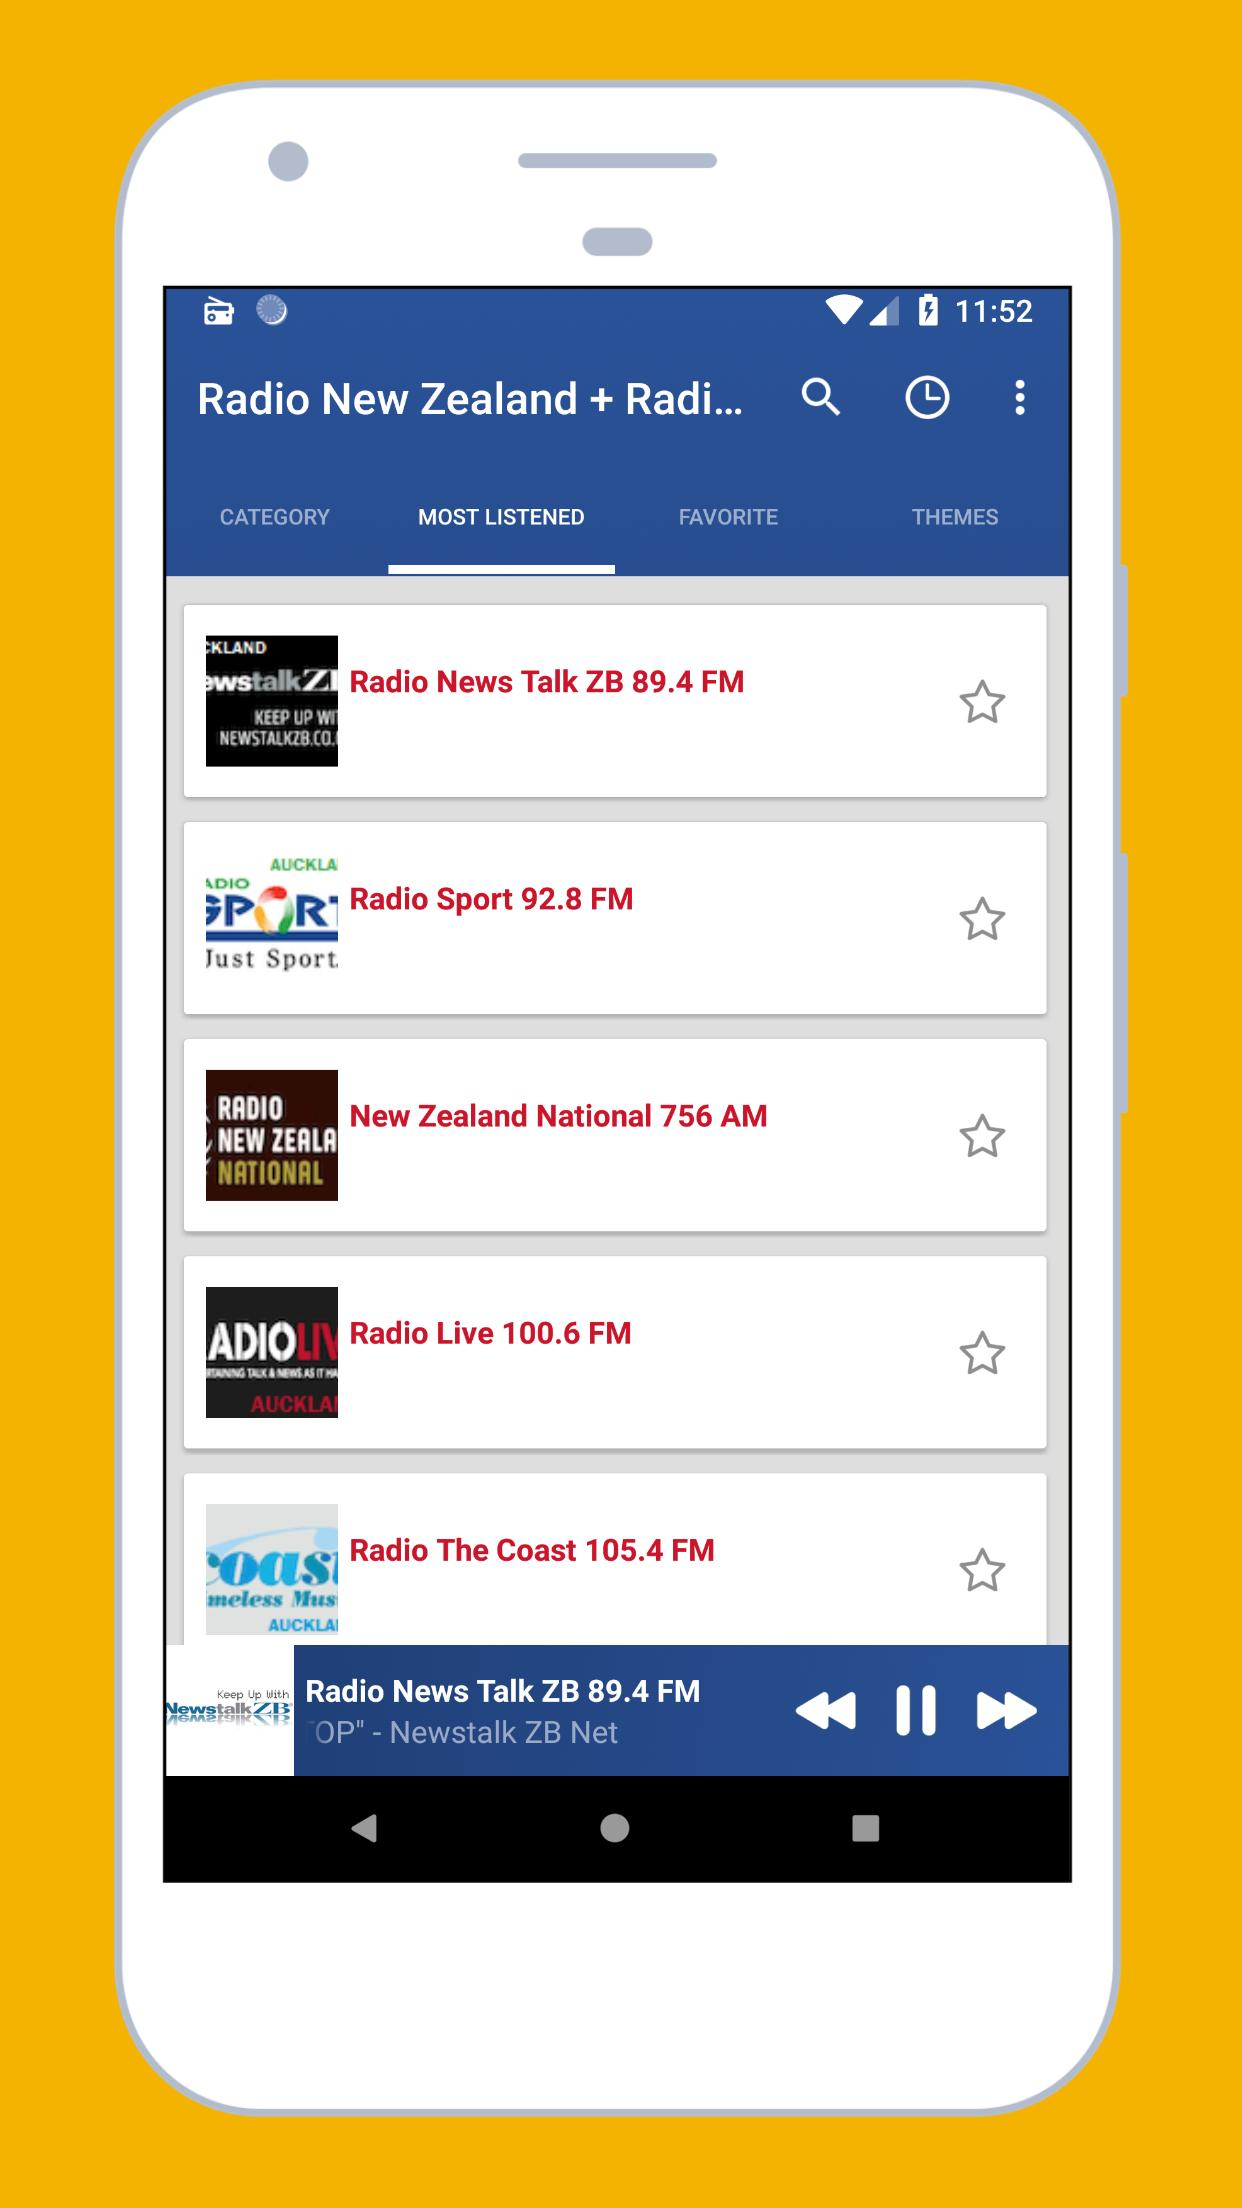 Radio New Zealand - Radio Nz Live, New Zealand App for